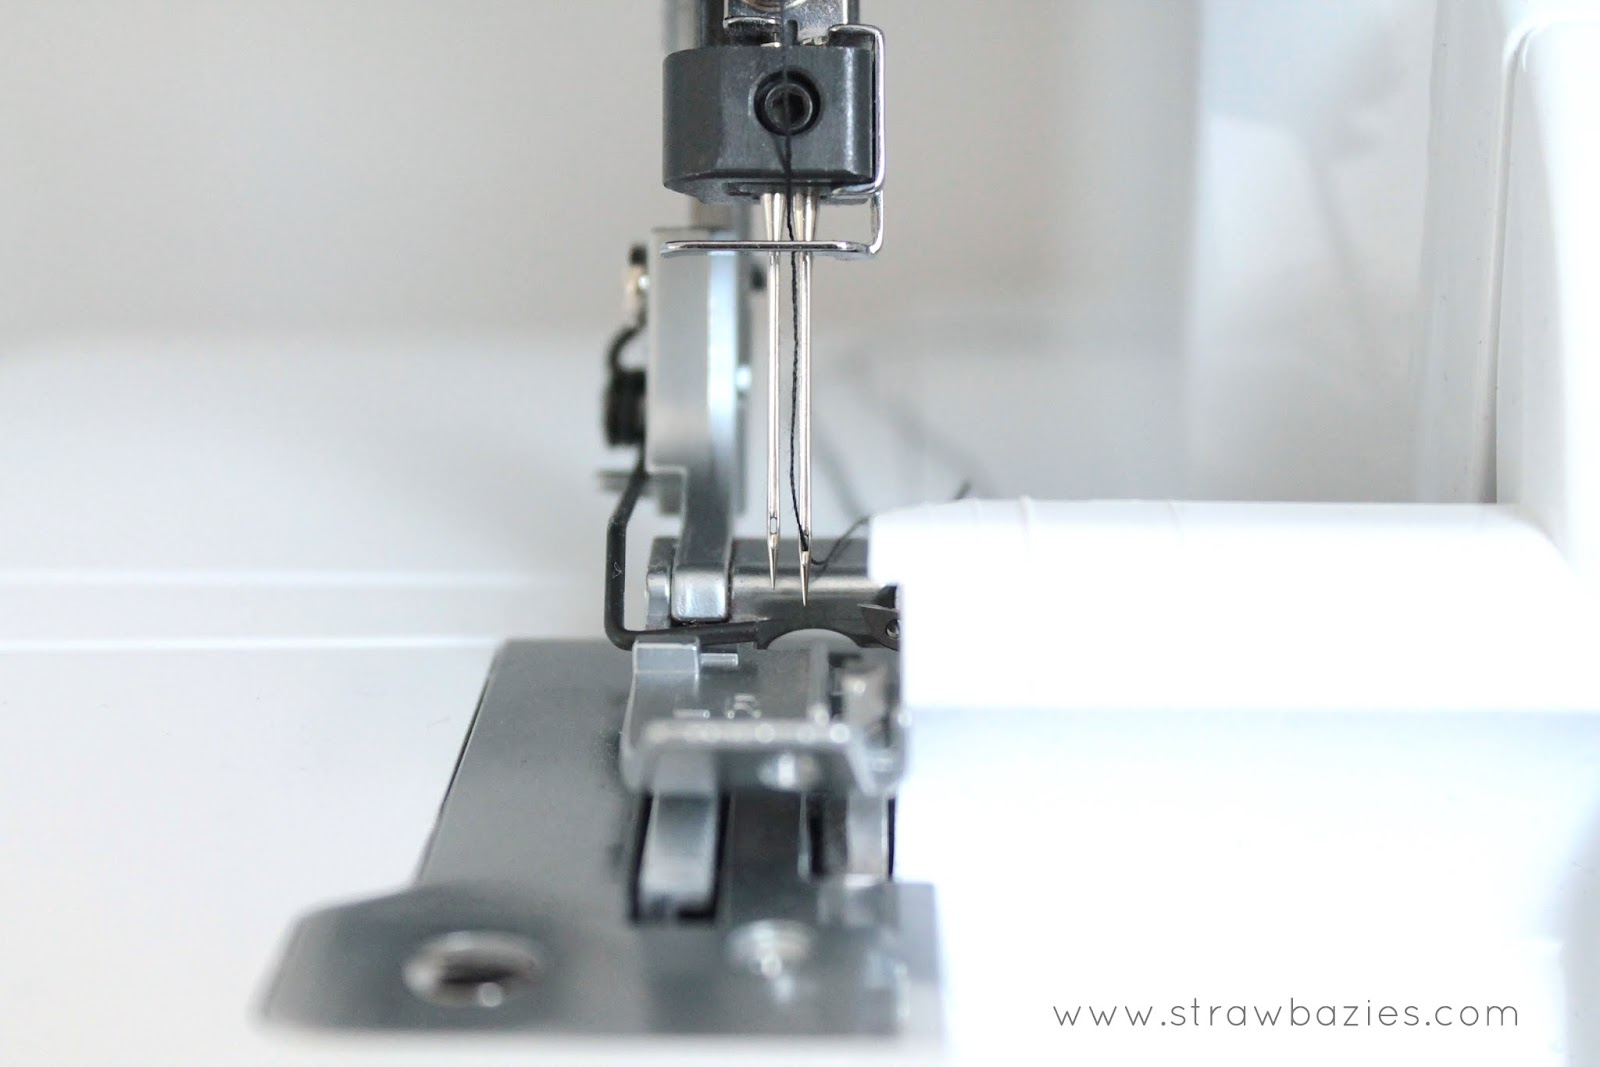 sewing machine keeps jamming